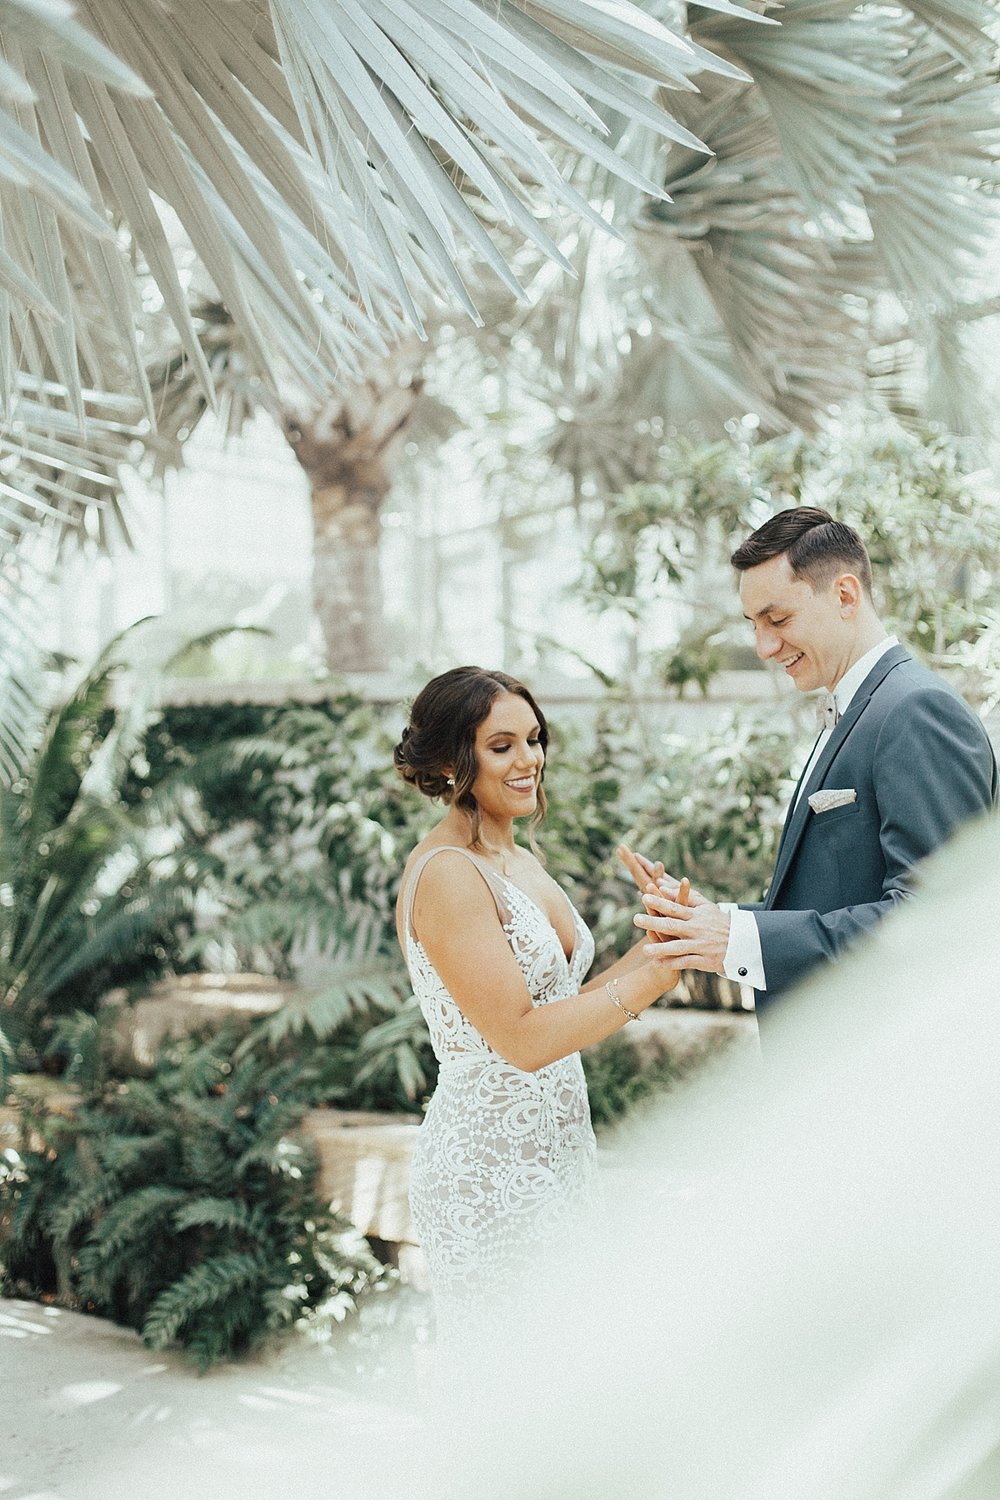 Rachel Wakefield Los Angeles Wedding Photographer Jordane and Jake White-105.jpg